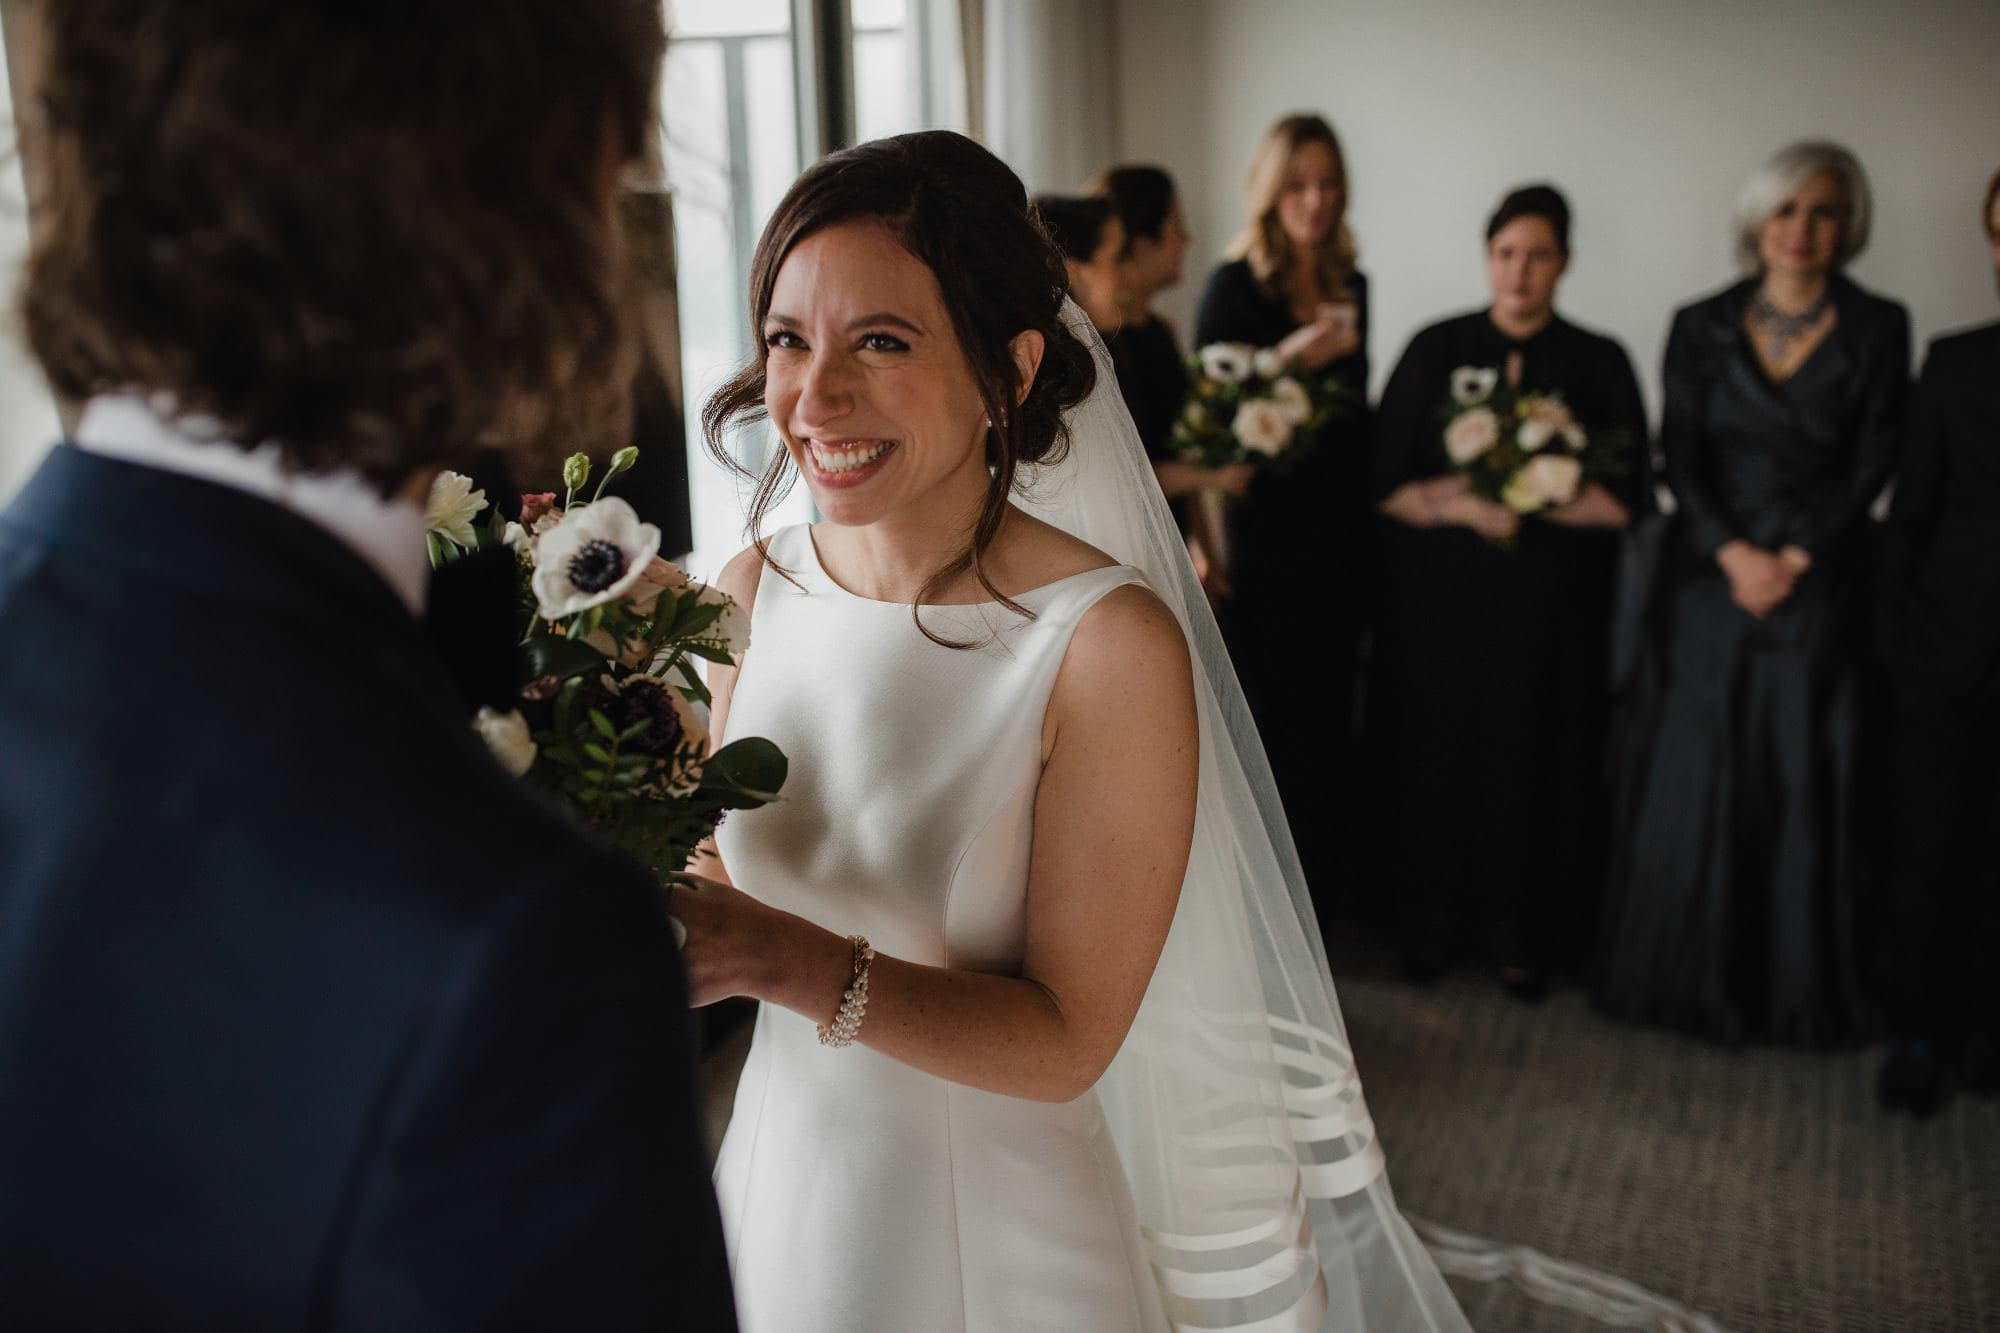 Bride smiles at groom after first look in a hotel room with family in background